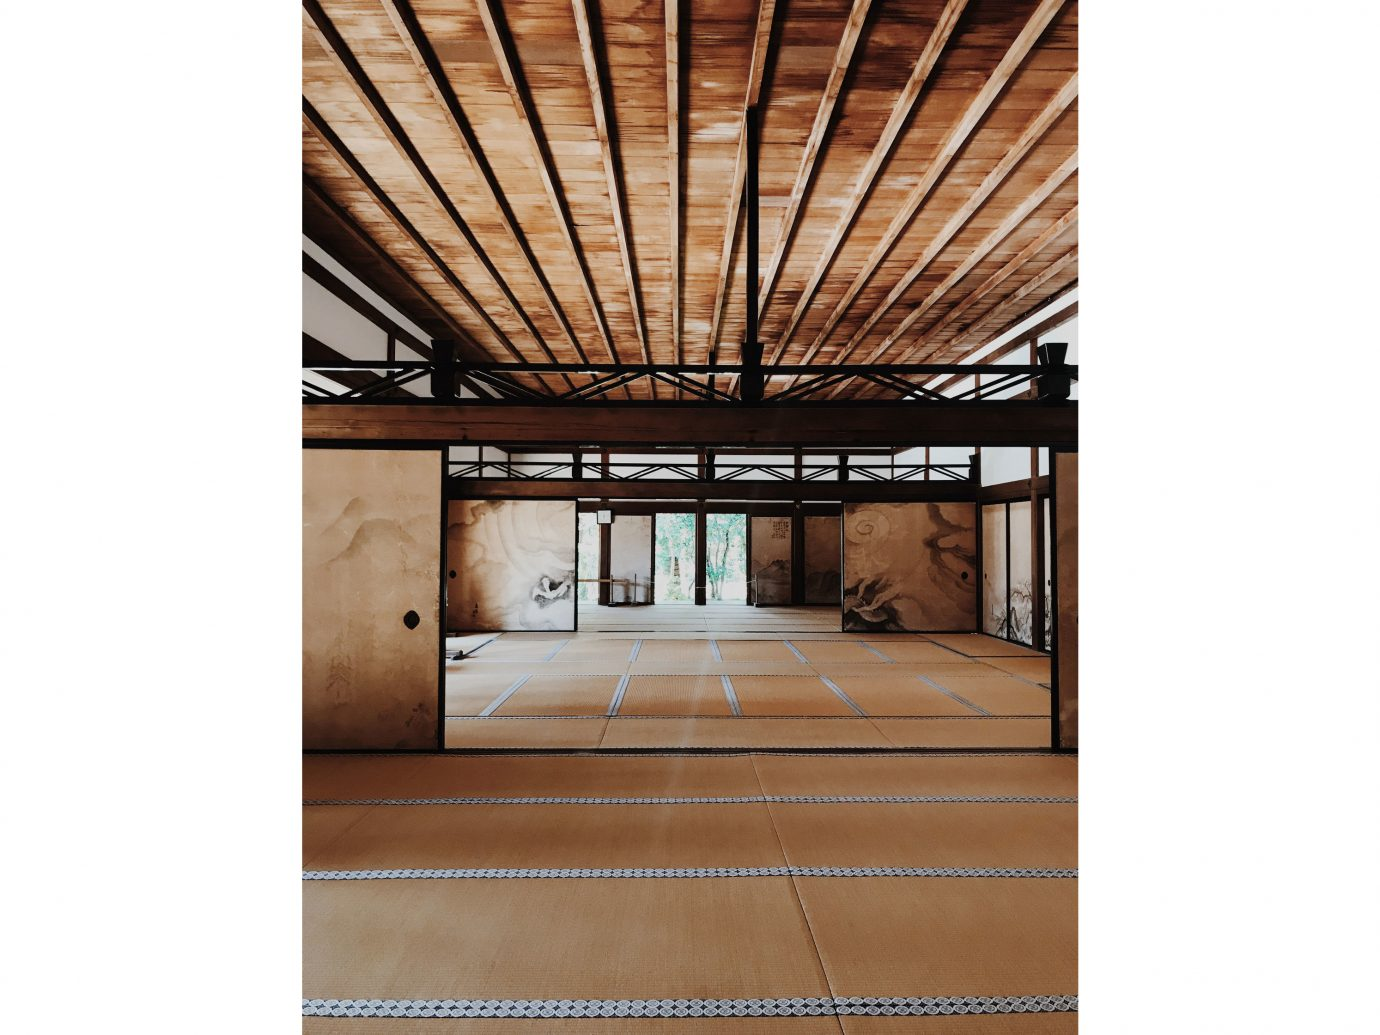 Influencers + Tastemakers Japan Photo Diary Tokyo property structure Architecture daylighting ceiling angle roof floor shade